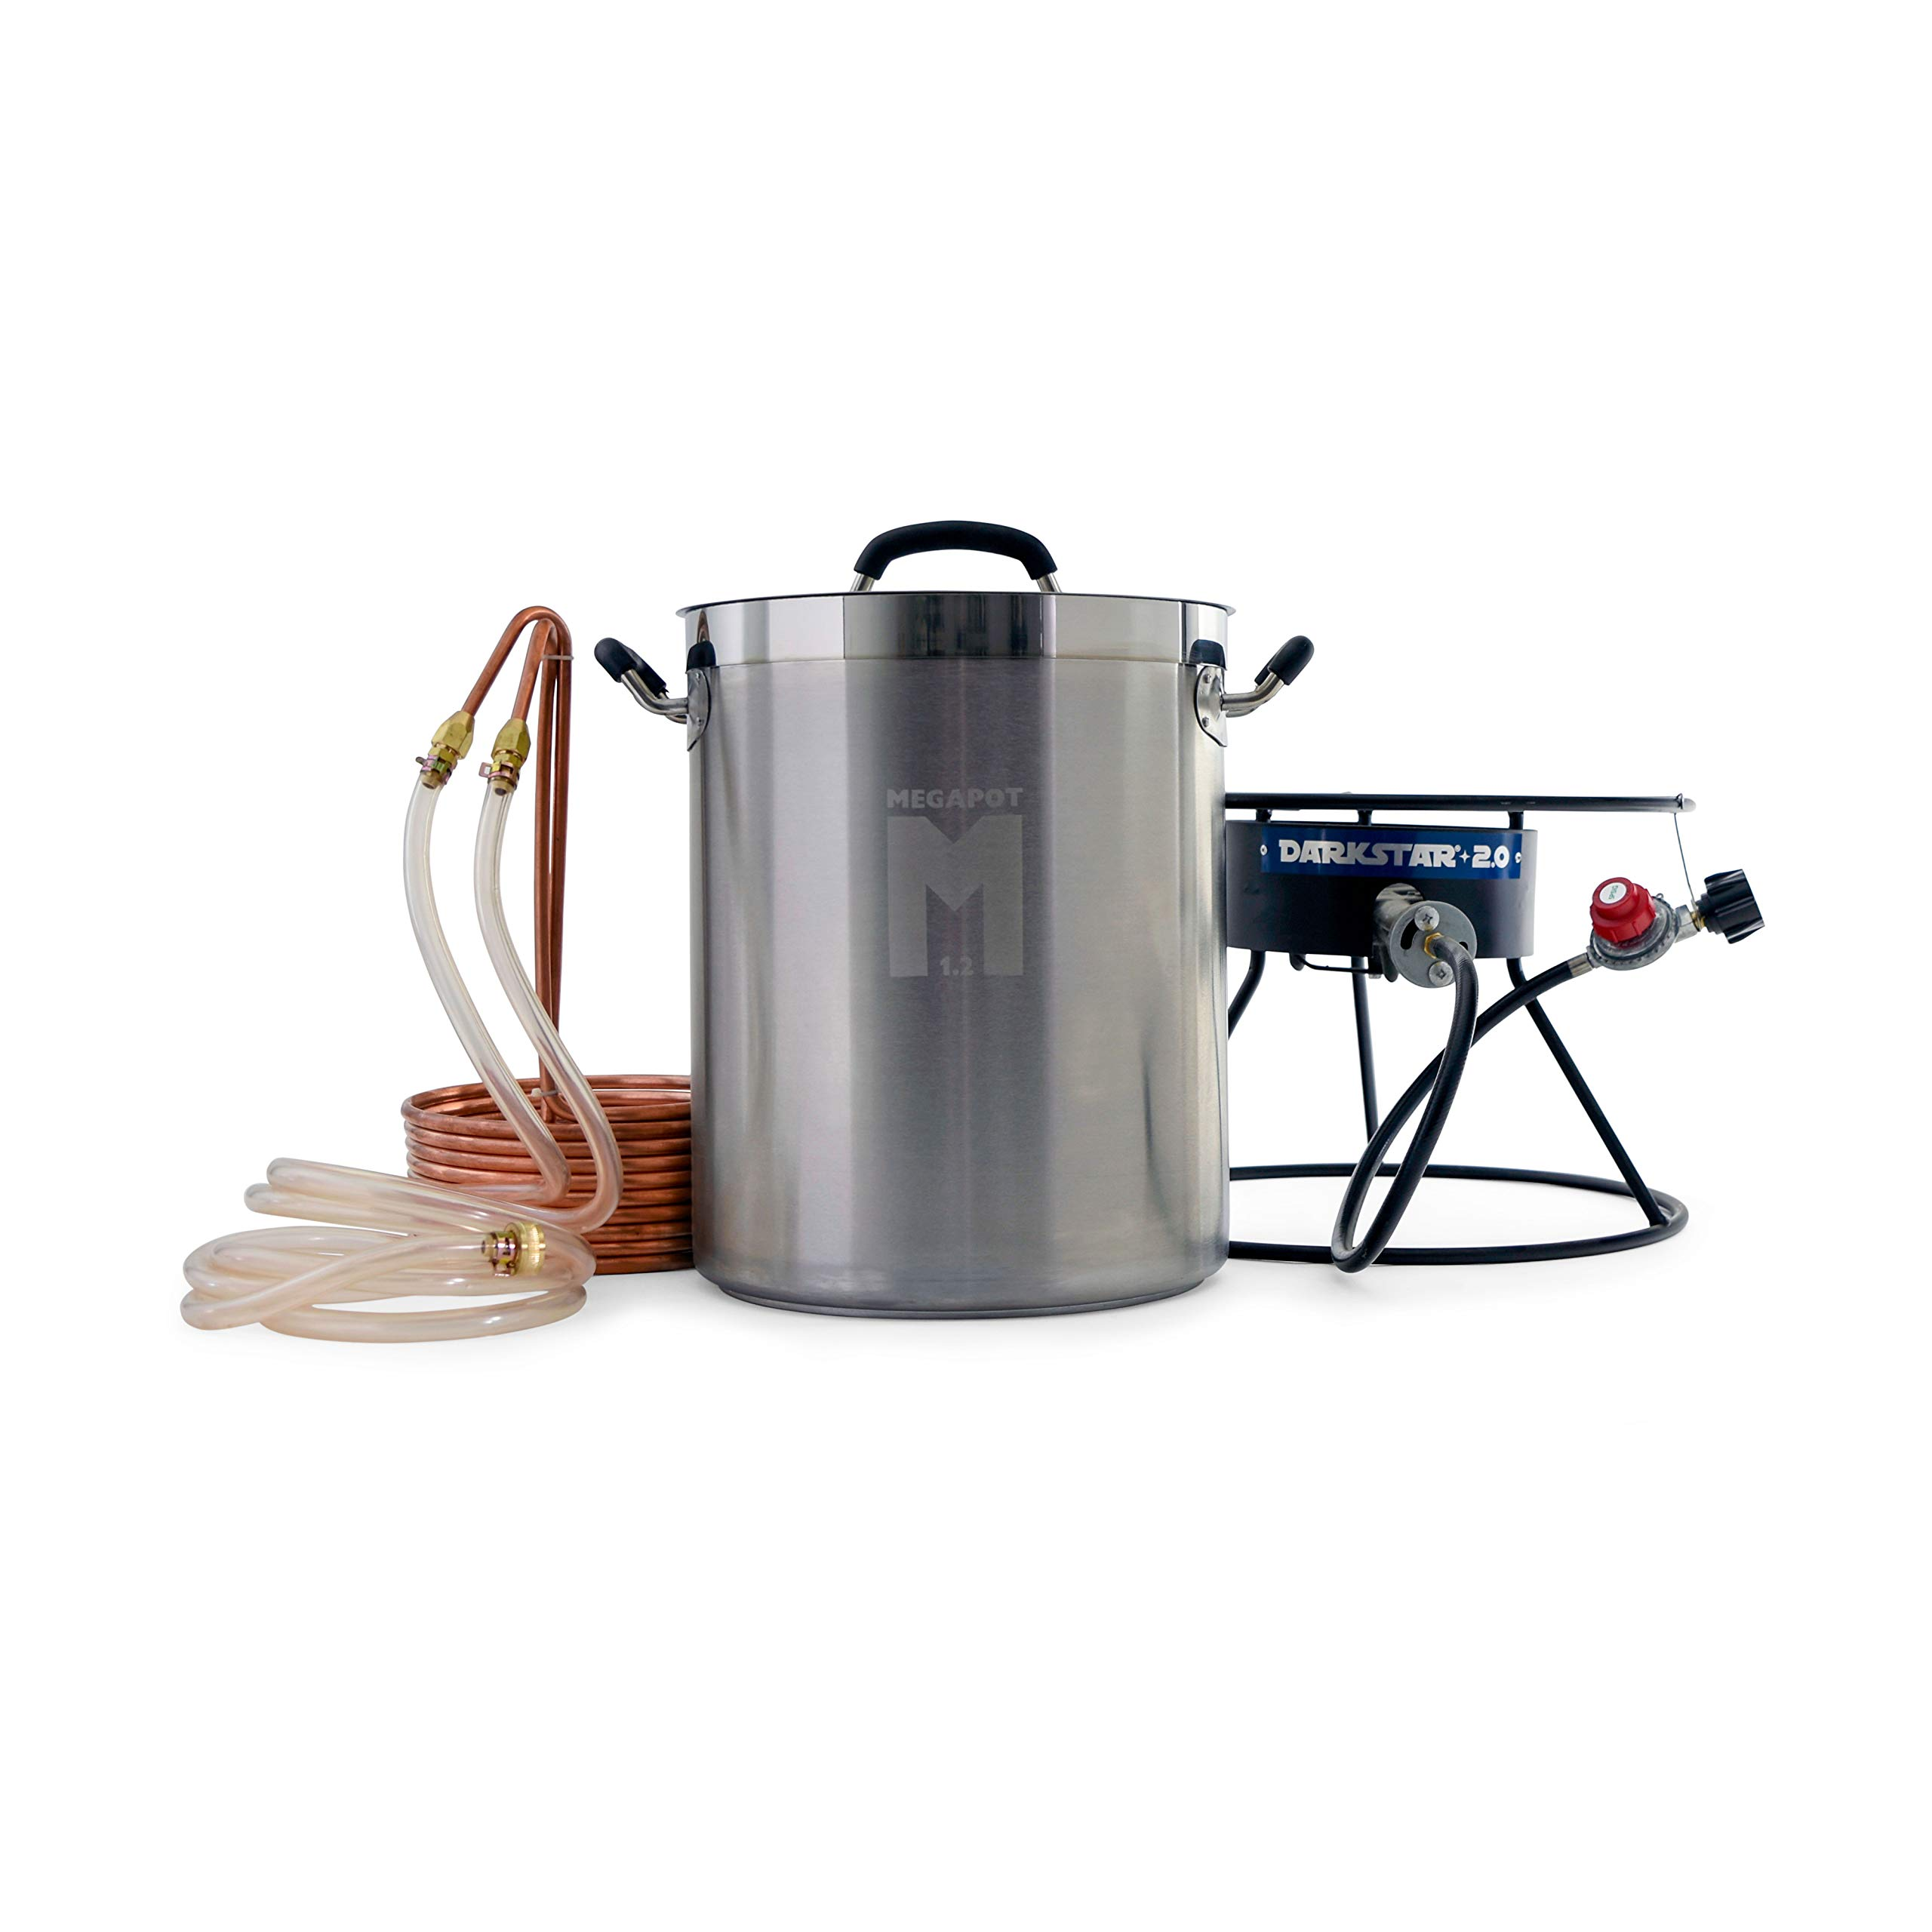 Brewhouse Ignition Pack Assembly - 8 Gallon Brew Kettle, Dark Star Propane Burner 2.0 And Copper Immersion Wort Chiller Equipment Combo For Home Brewing